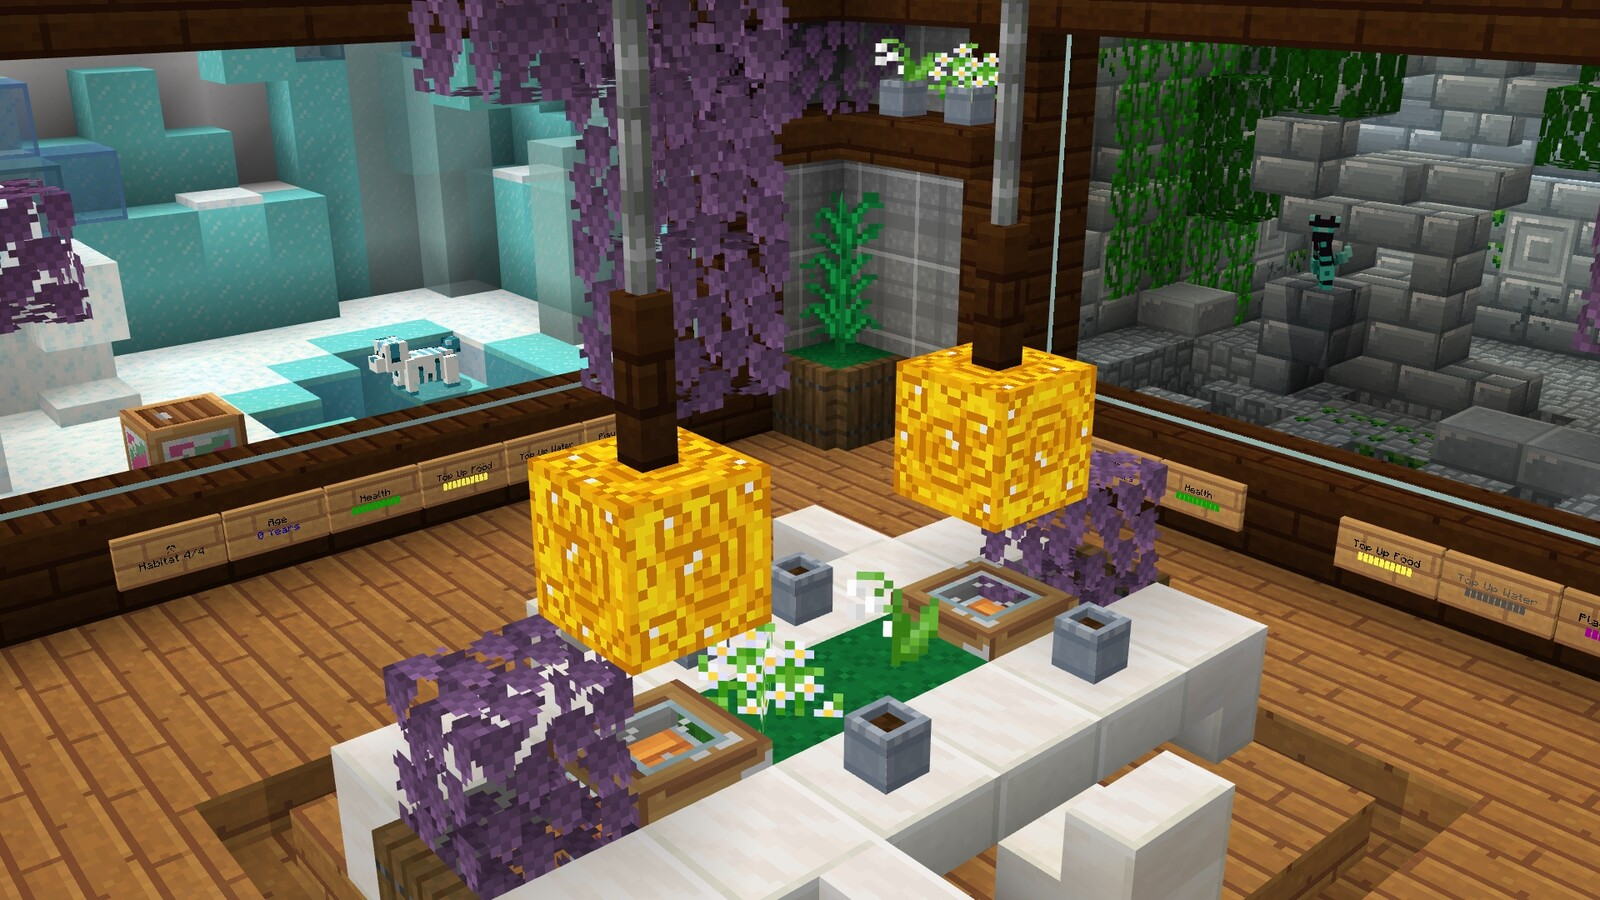 Preview of Room B's design. More modern and upgraded look.